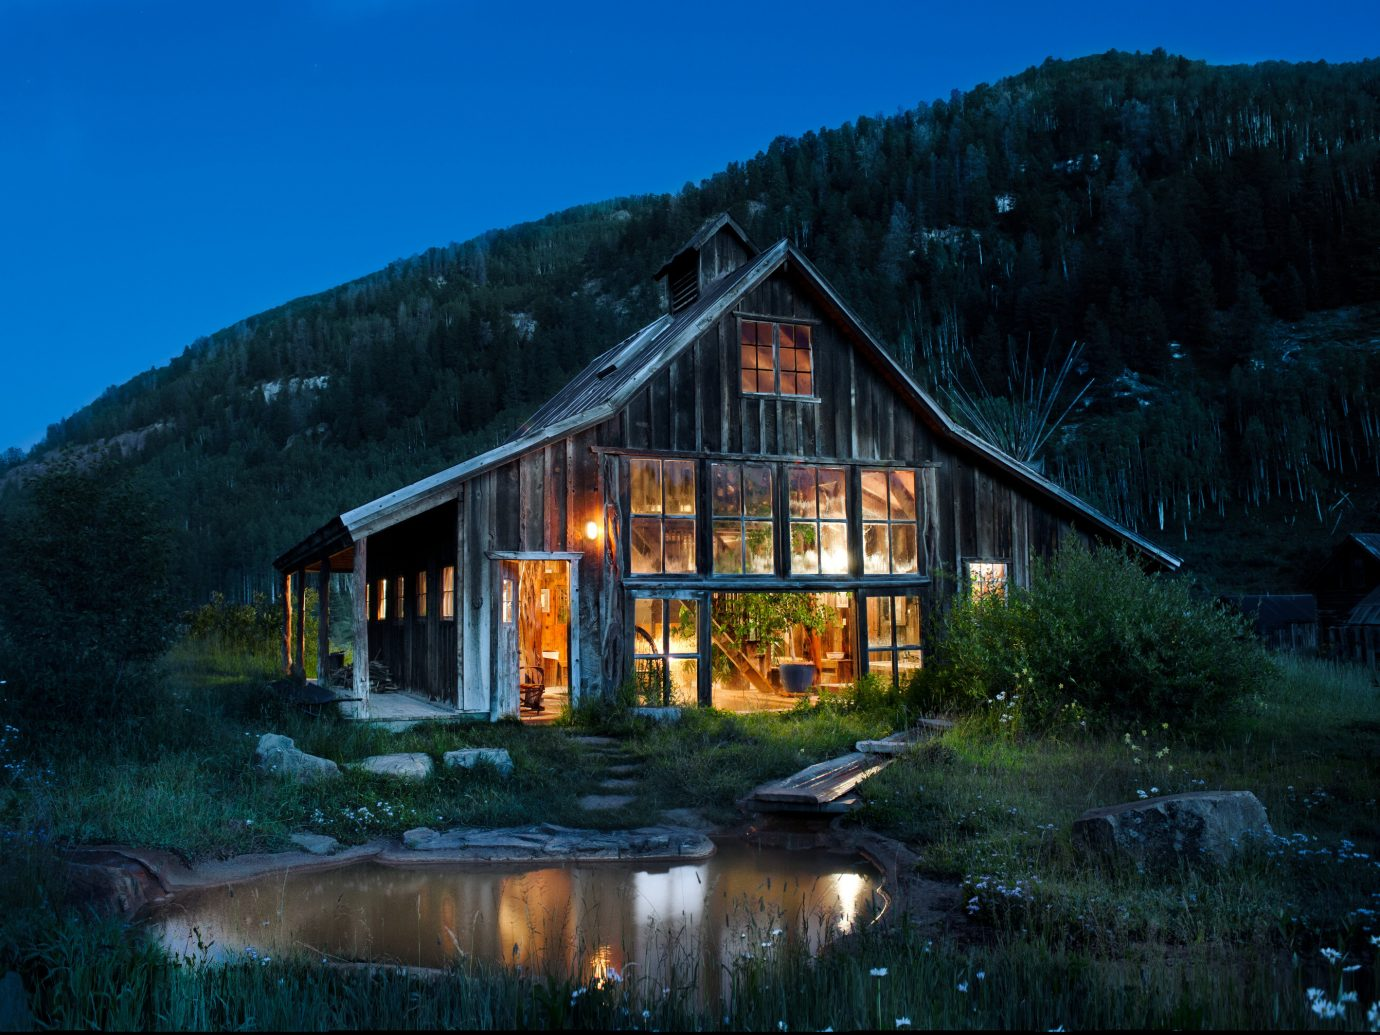 Boutique Hotels Fall Travel Hotels Outdoors + Adventure sky outdoor Nature reflection home building cottage house mountain hut log cabin evening rural area real estate mountain range landscape Winter farmhouse tree barn night computer wallpaper water estate hillside